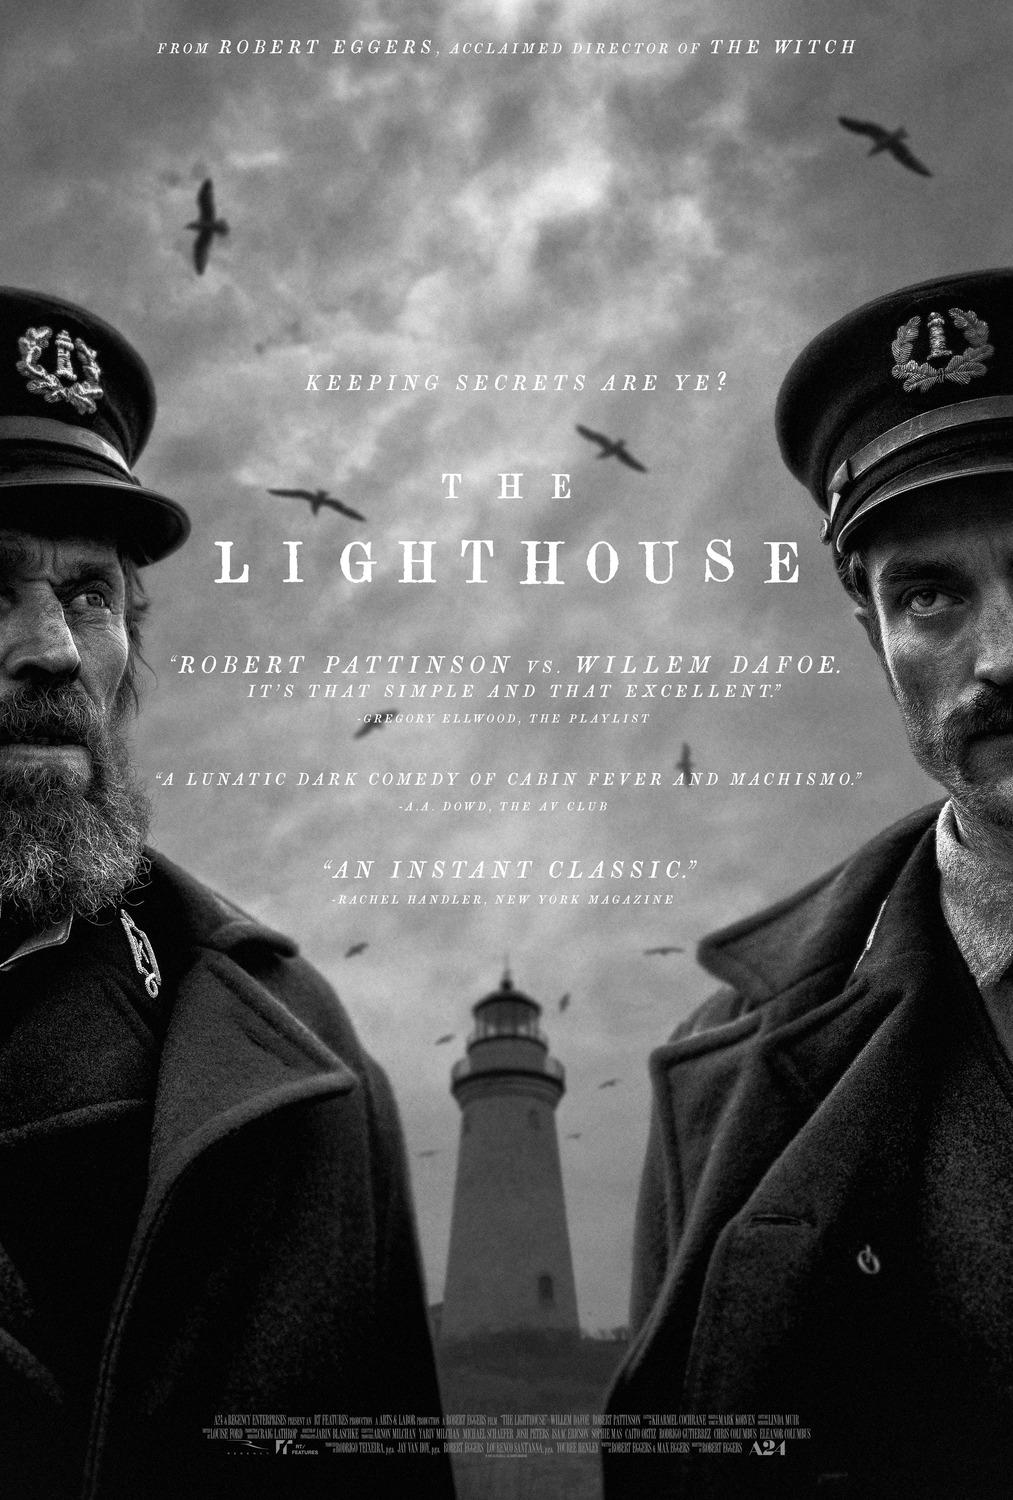 Robert Pattinson The Lighthouse Robert Pattinson